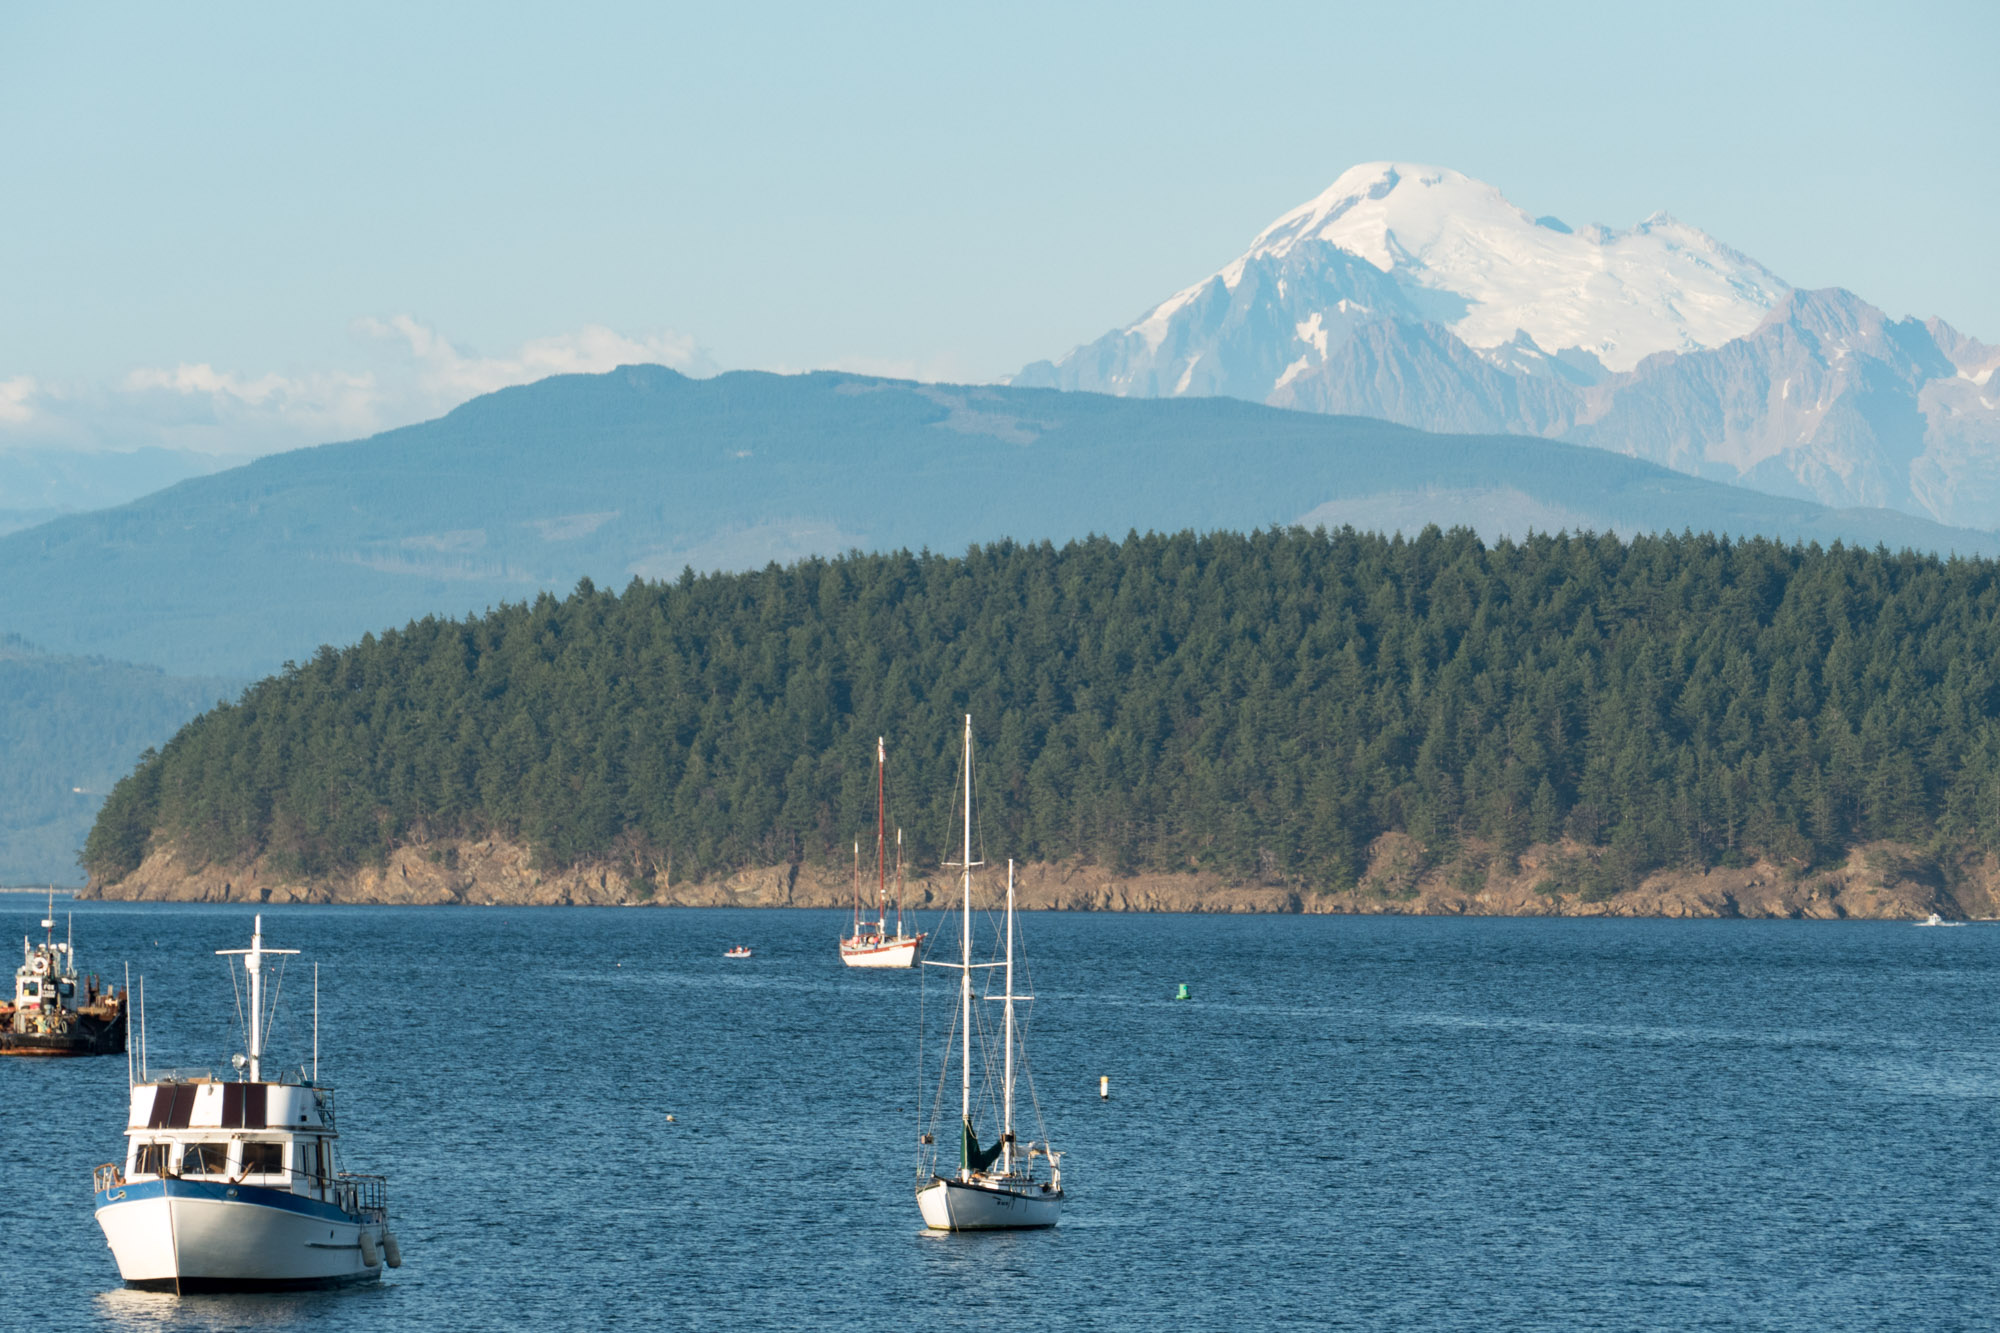 Mt. Baker from the Anacortes harbor